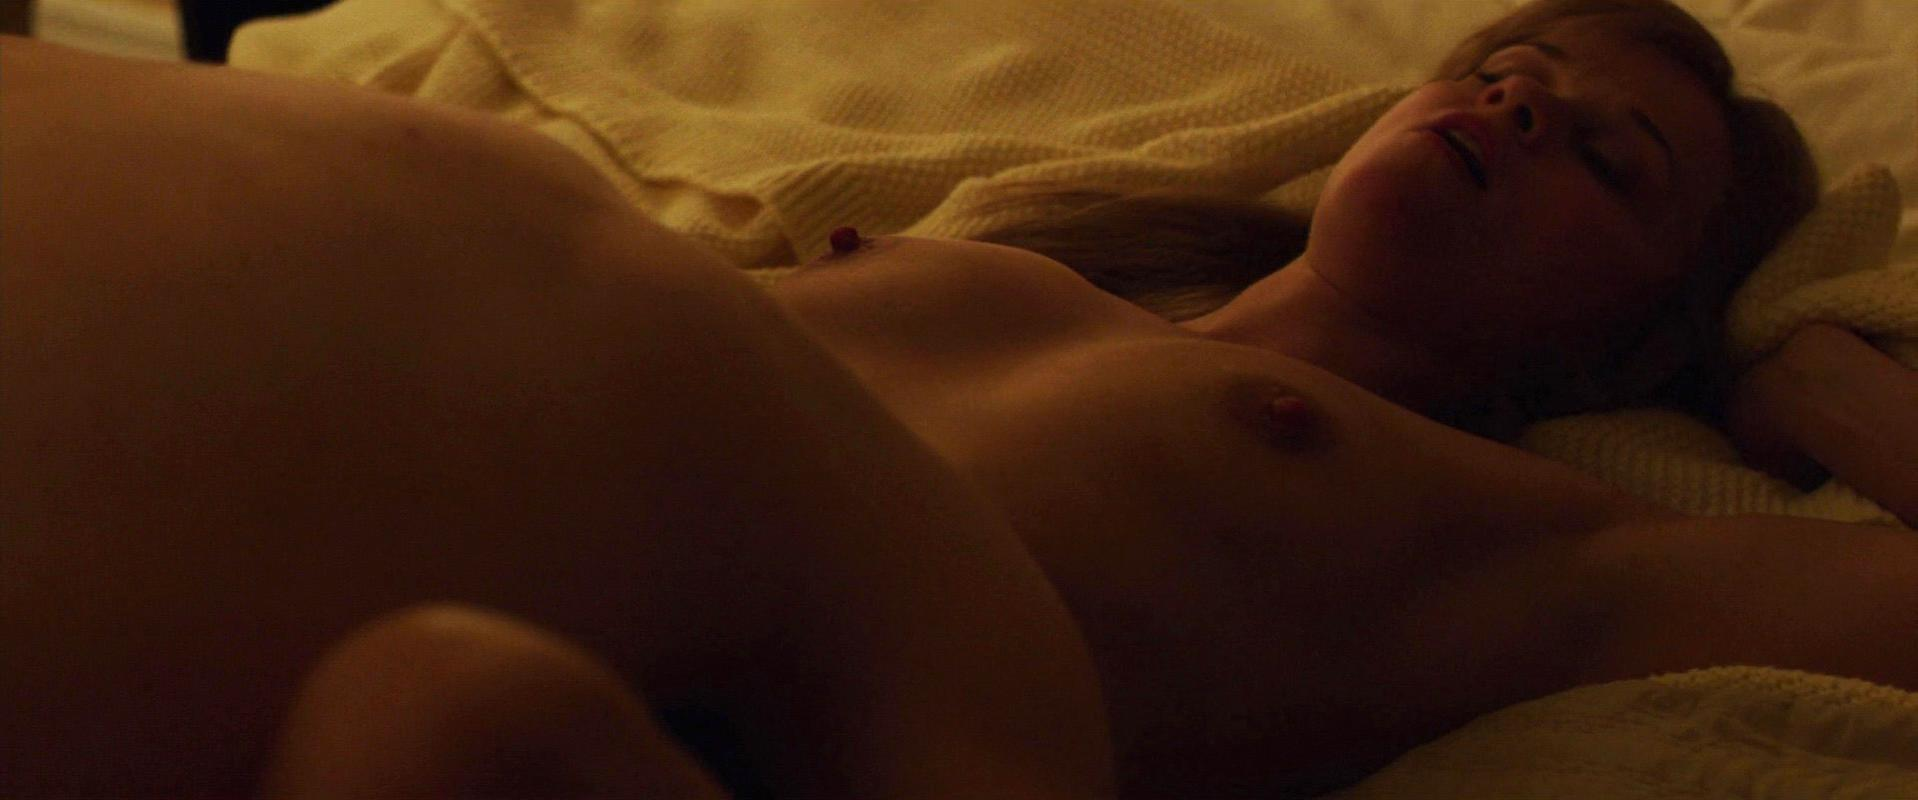 Reede Wotherspoon Nude